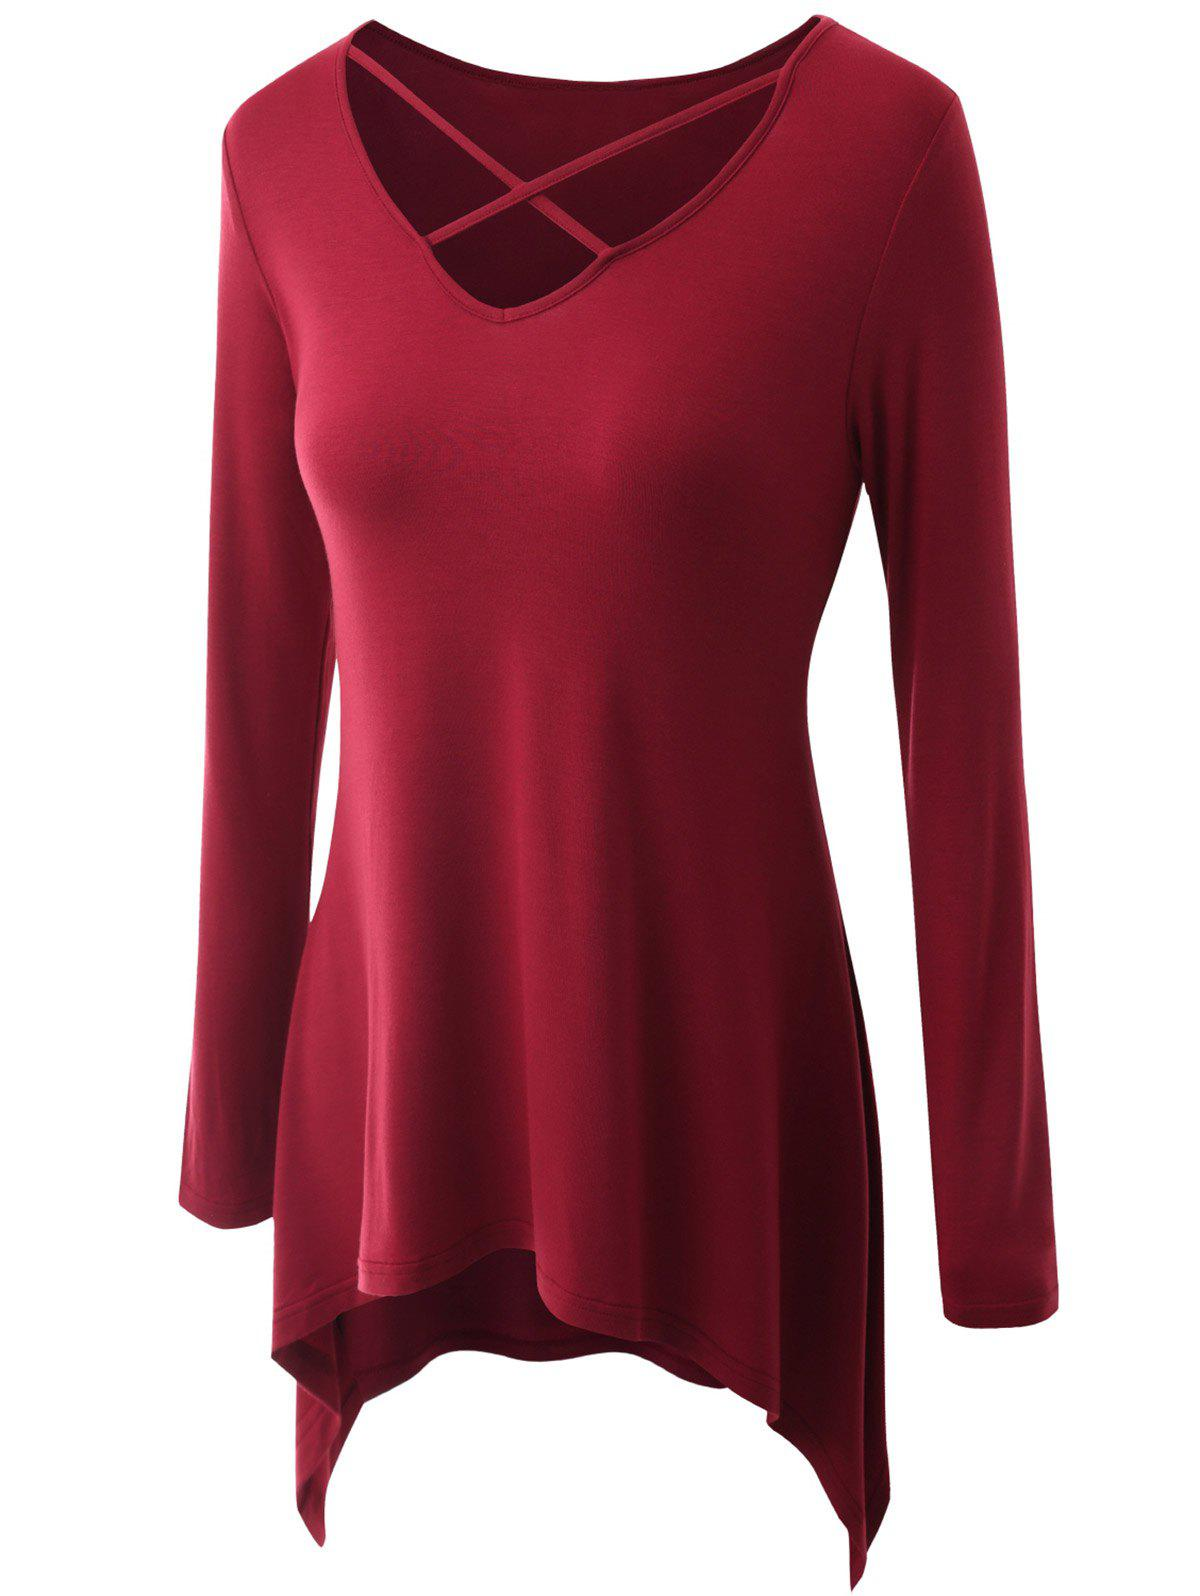 Plus Size Criss Cross Asymmetrical T-shirt - WINE RED 2XL